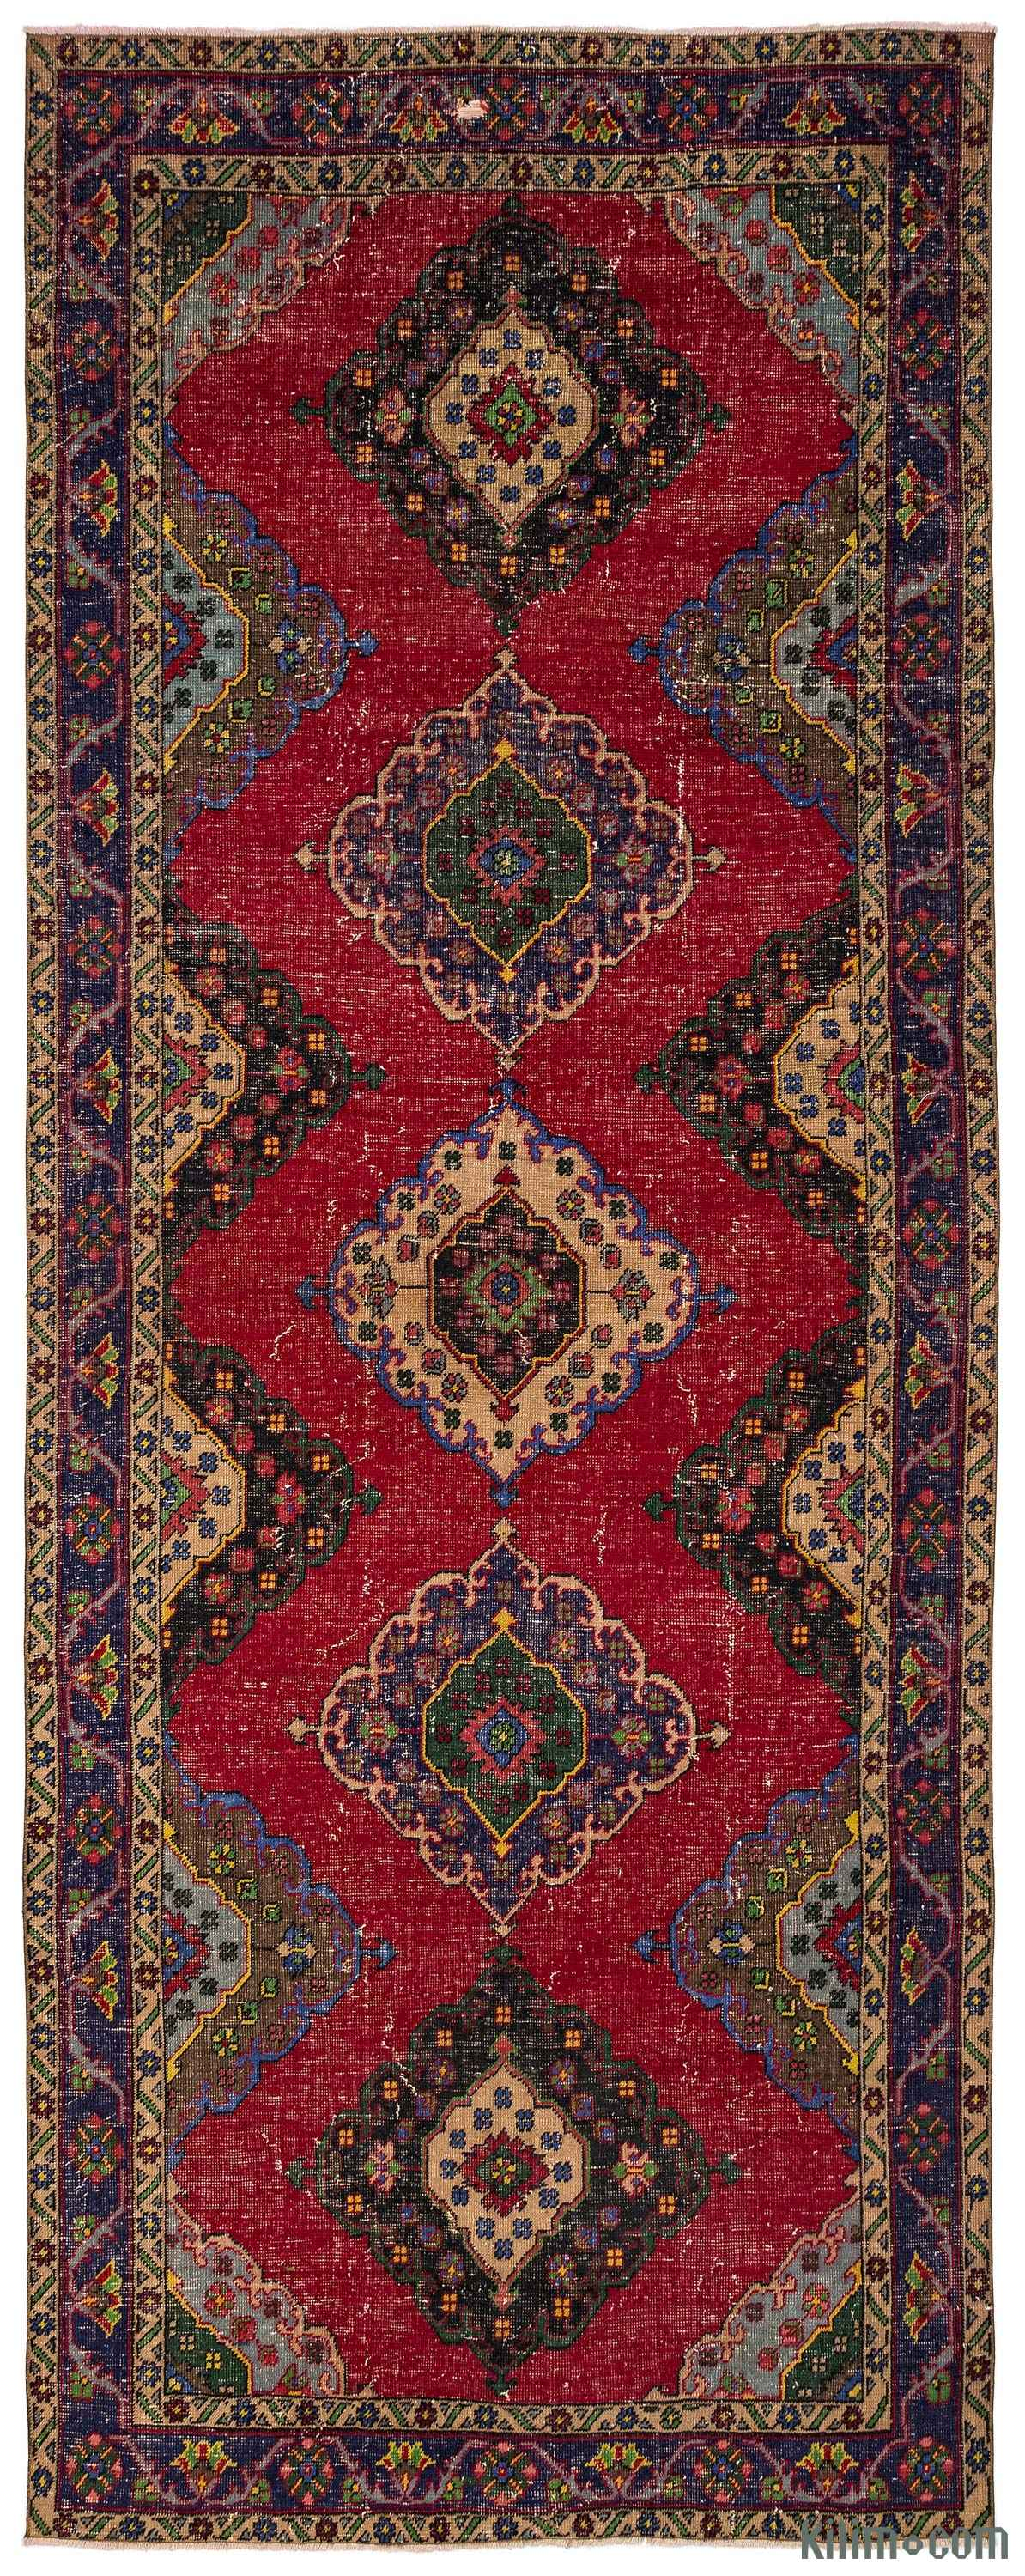 turkish vintage runner rug FWHBBHZ